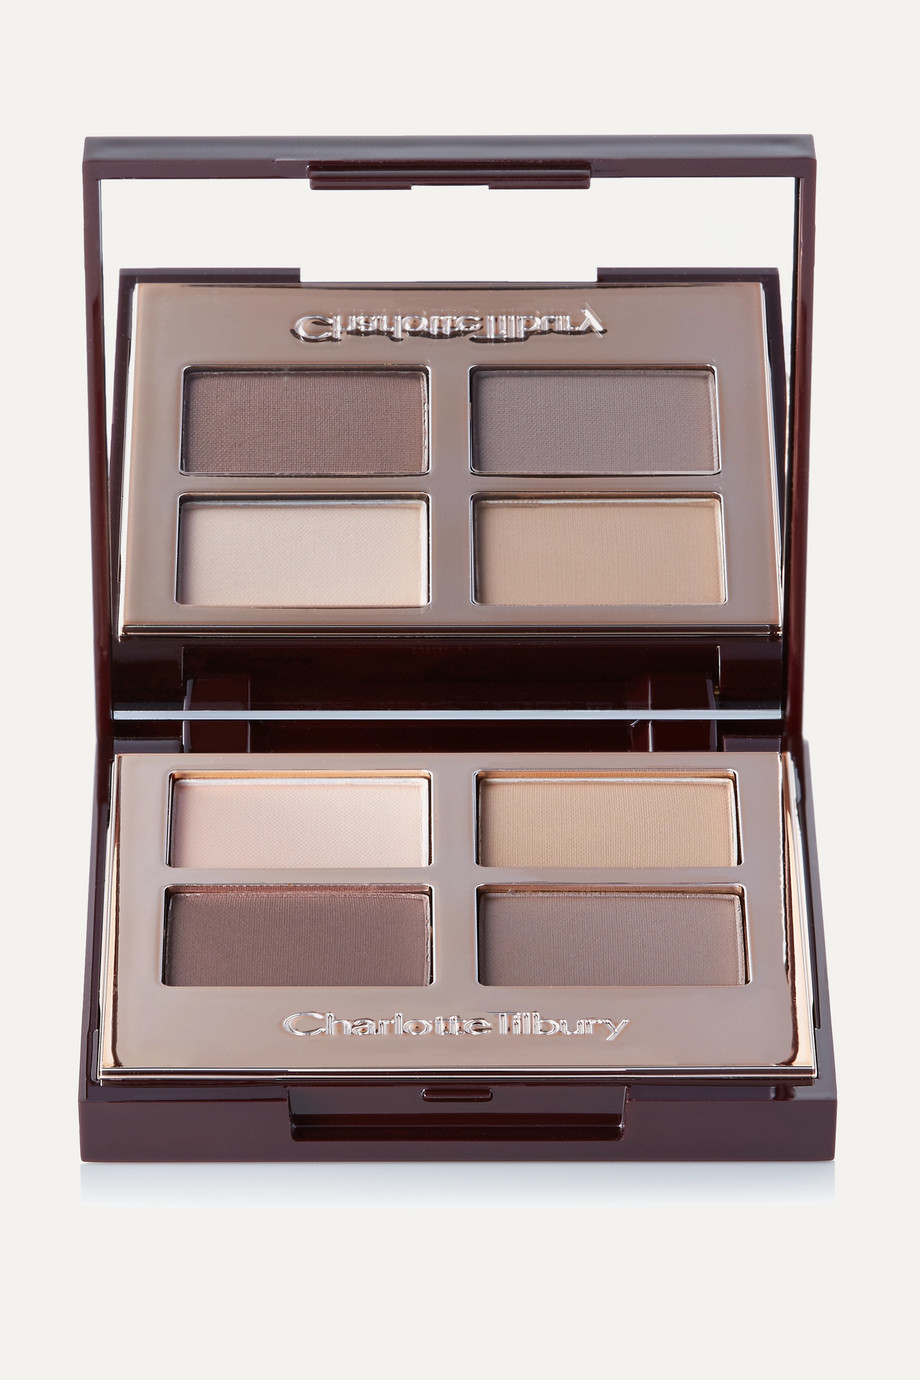 CHARLOTTE TILBURY Luxury Palette Eyeshadow Quad - The Sophisticate